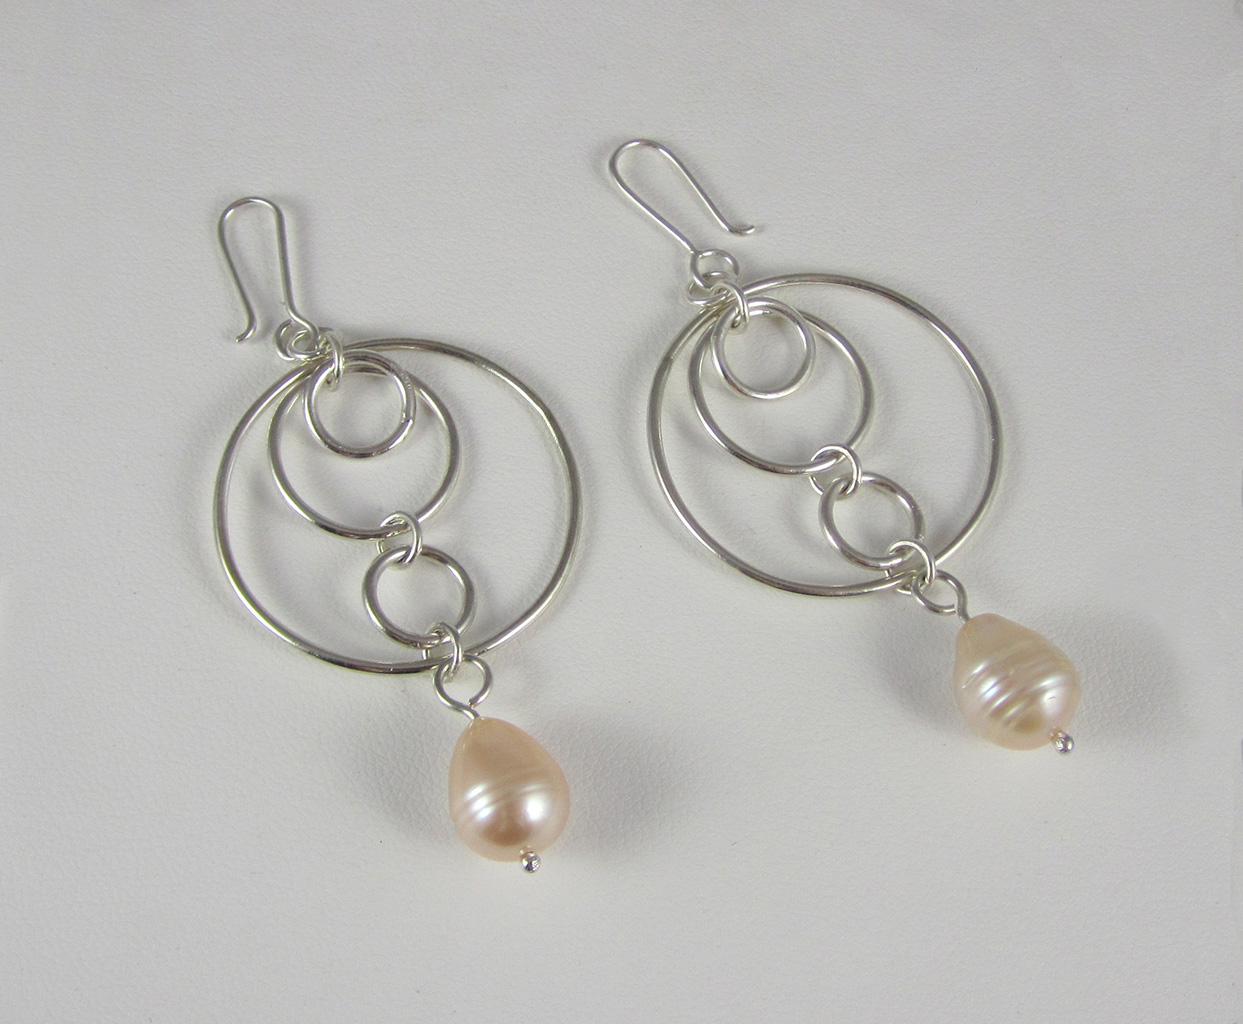 Earrings for the mother of the bride